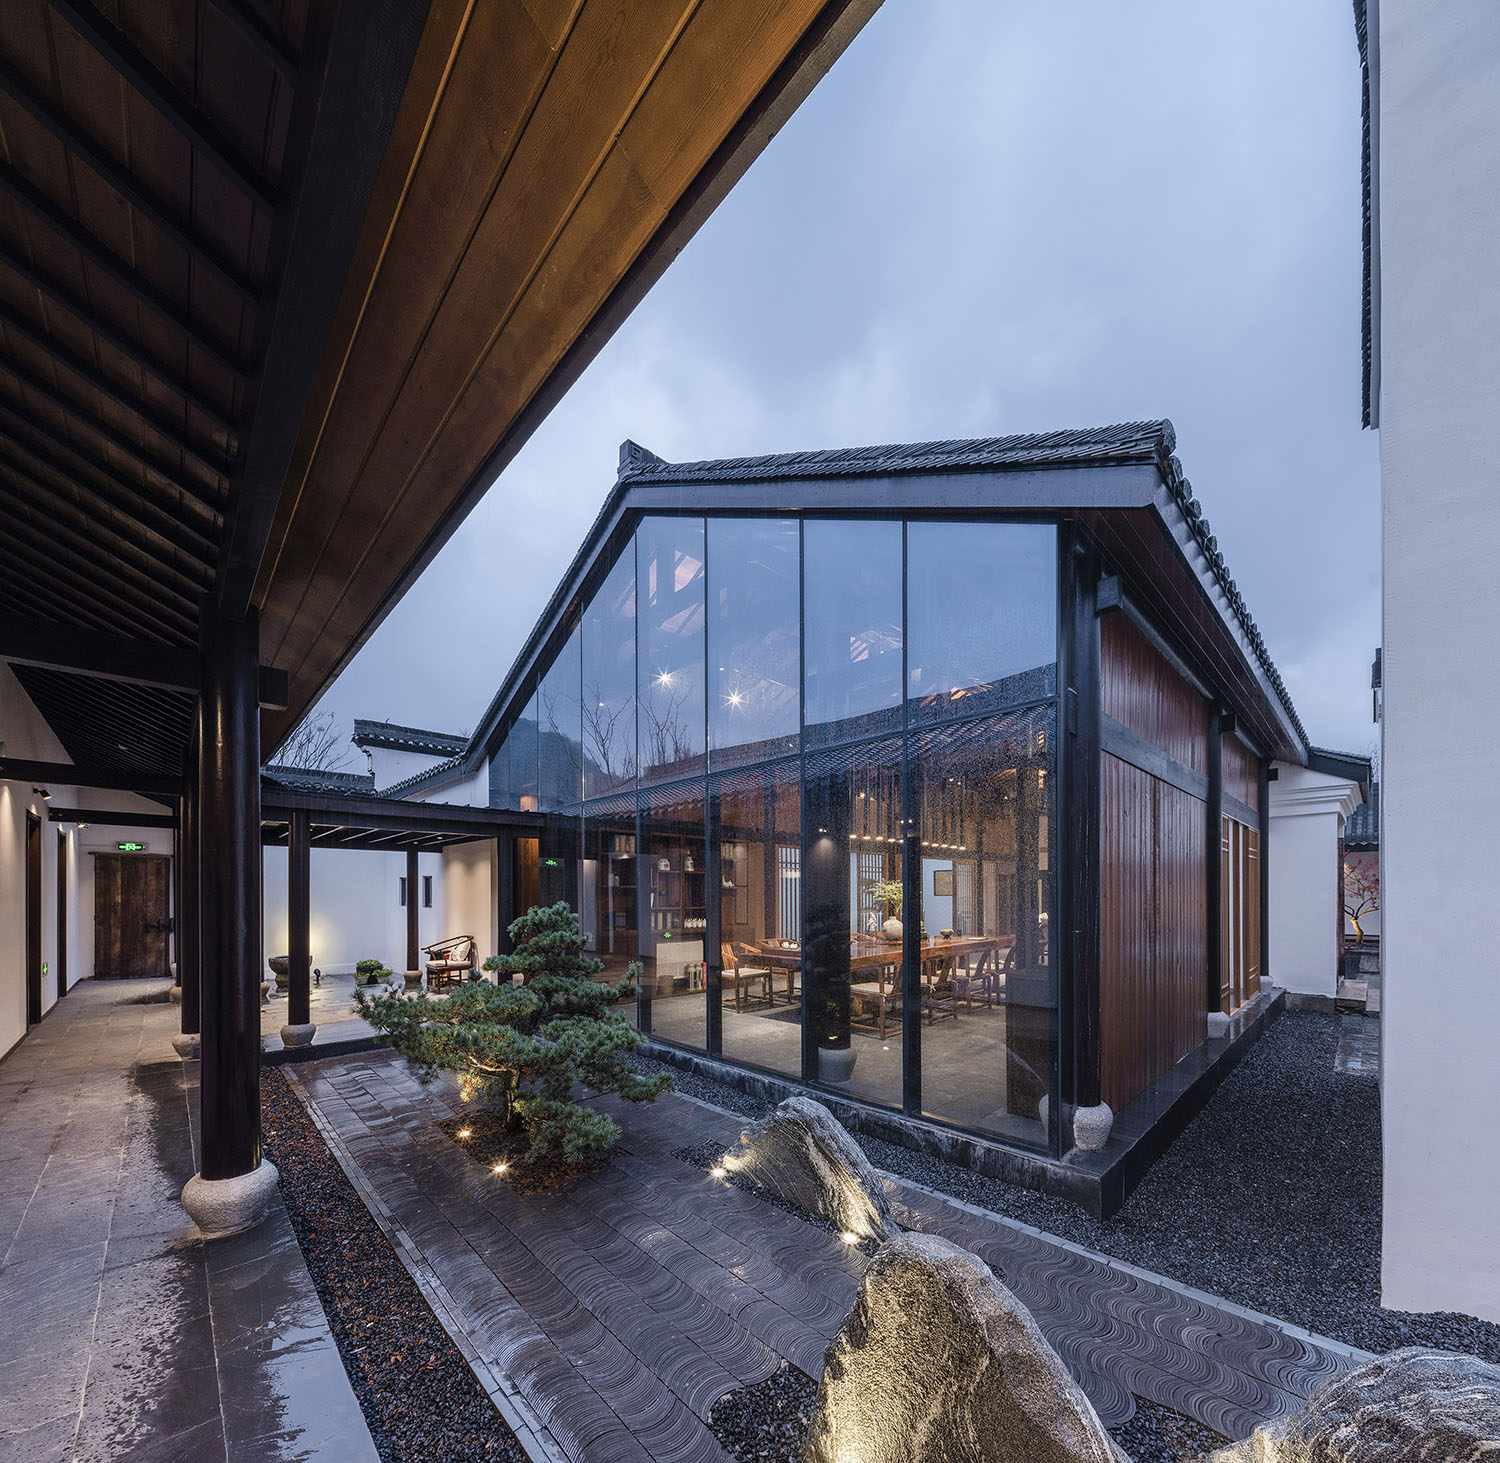 The courtyard continued with a transparent living space Fancy Image